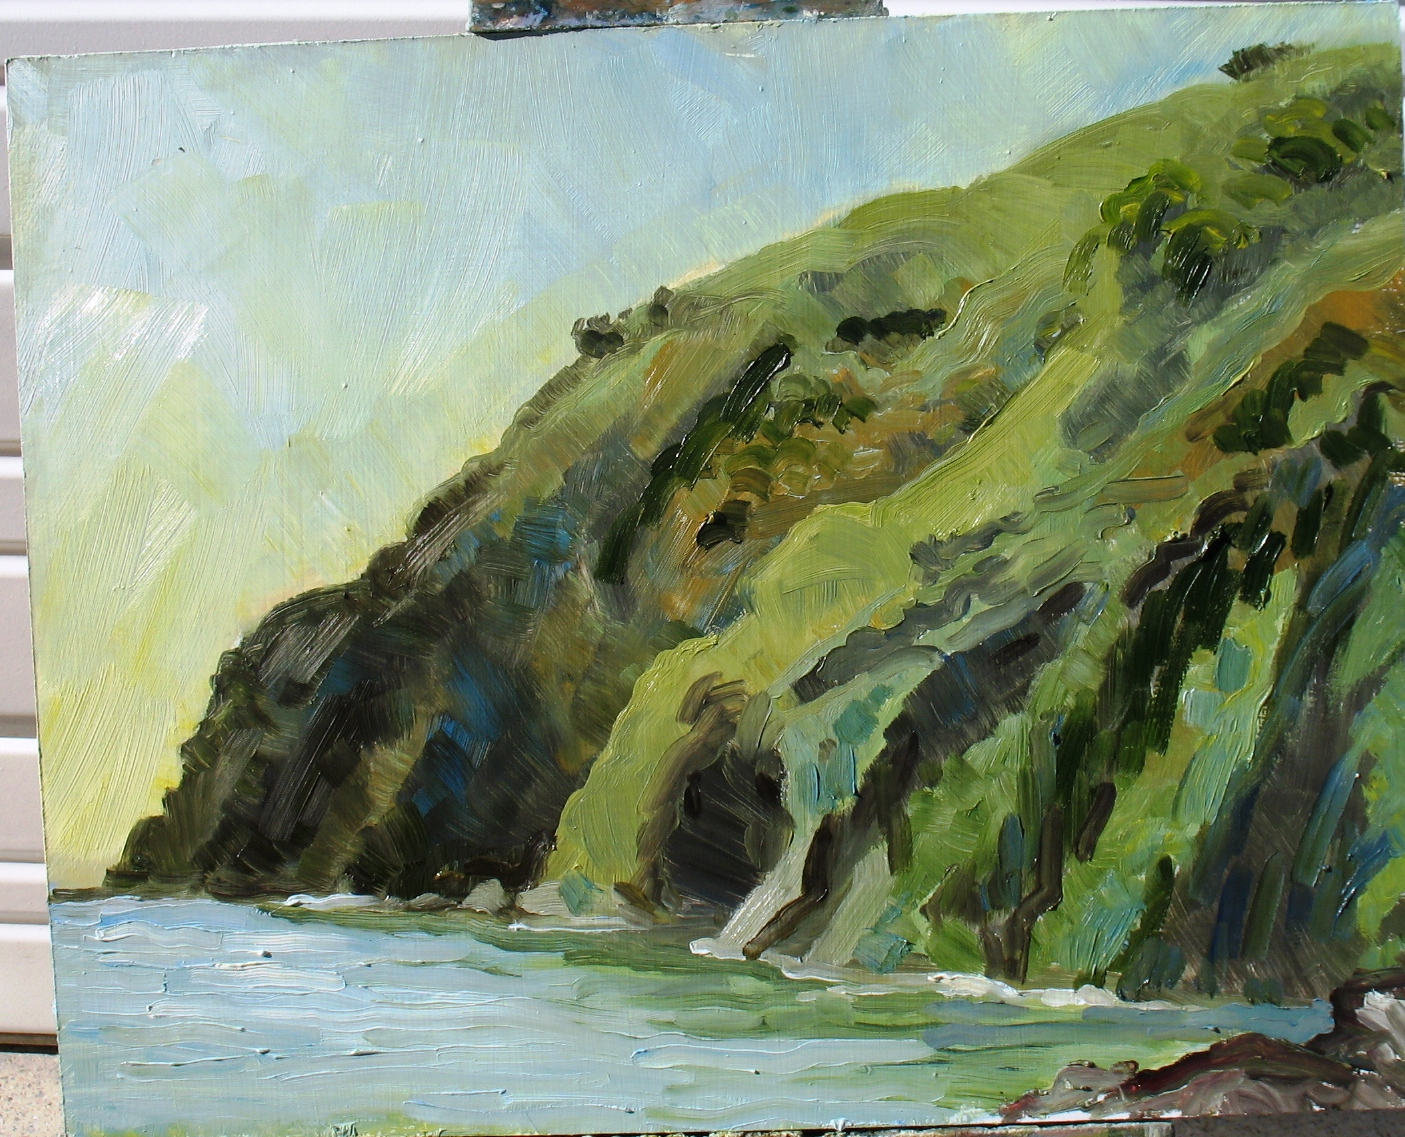 Avila Bay Looking North to Morning Sun, 16 x 20 inches, oil on panel, 2013